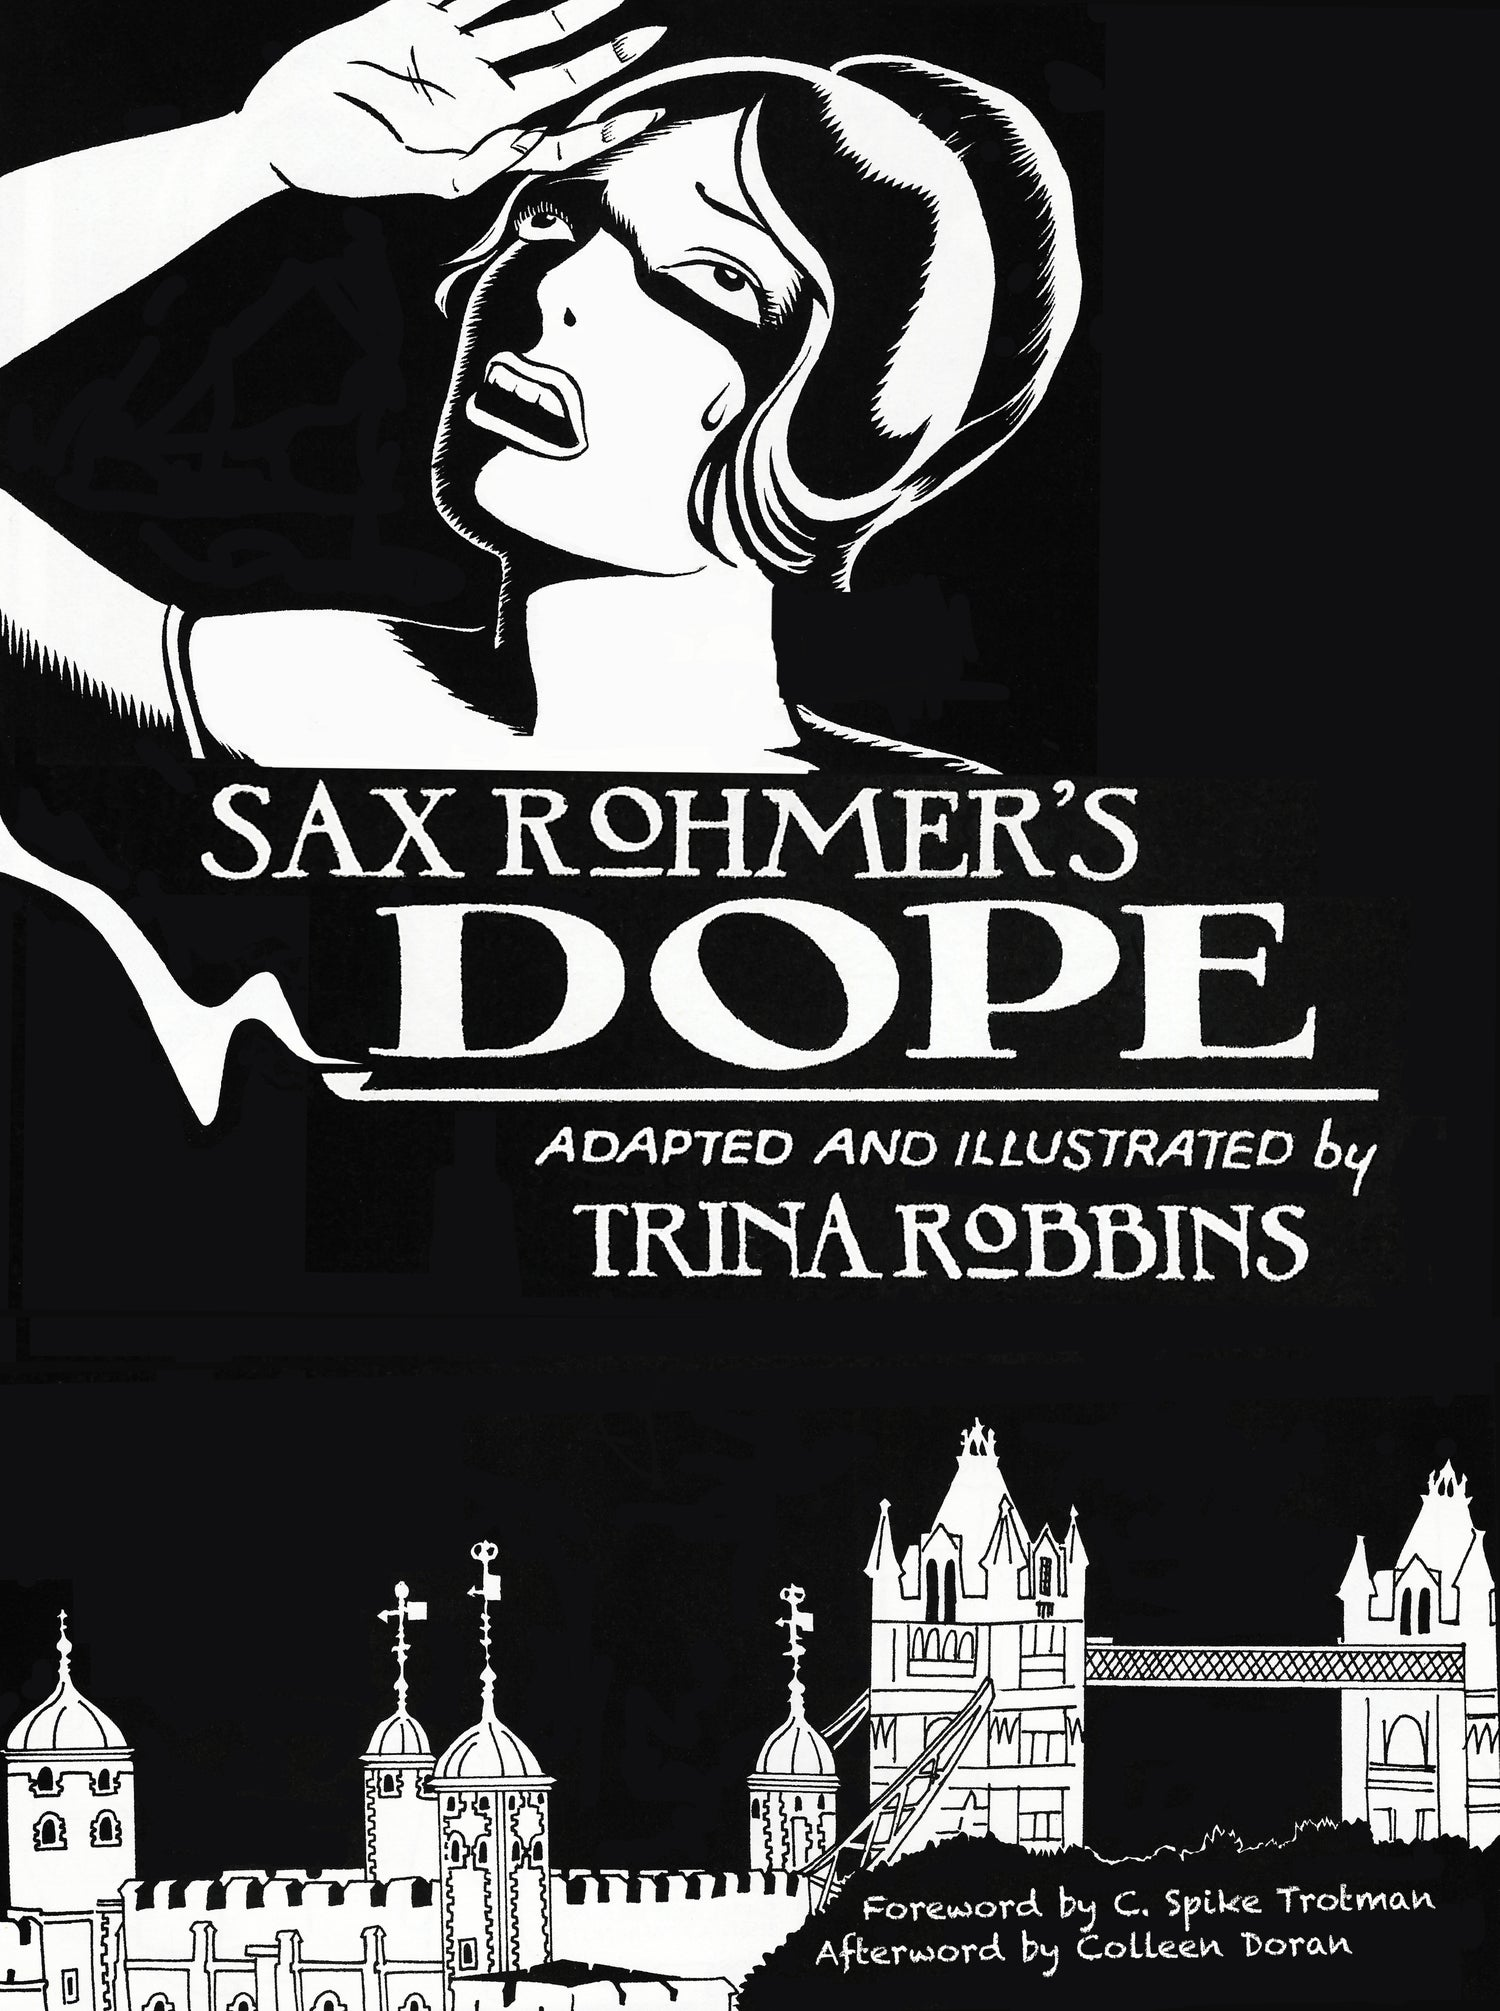 Image of Sax Rohmer's DOPE signed by Trina Robbins, C. Spike Trotman, and Colleen Doran